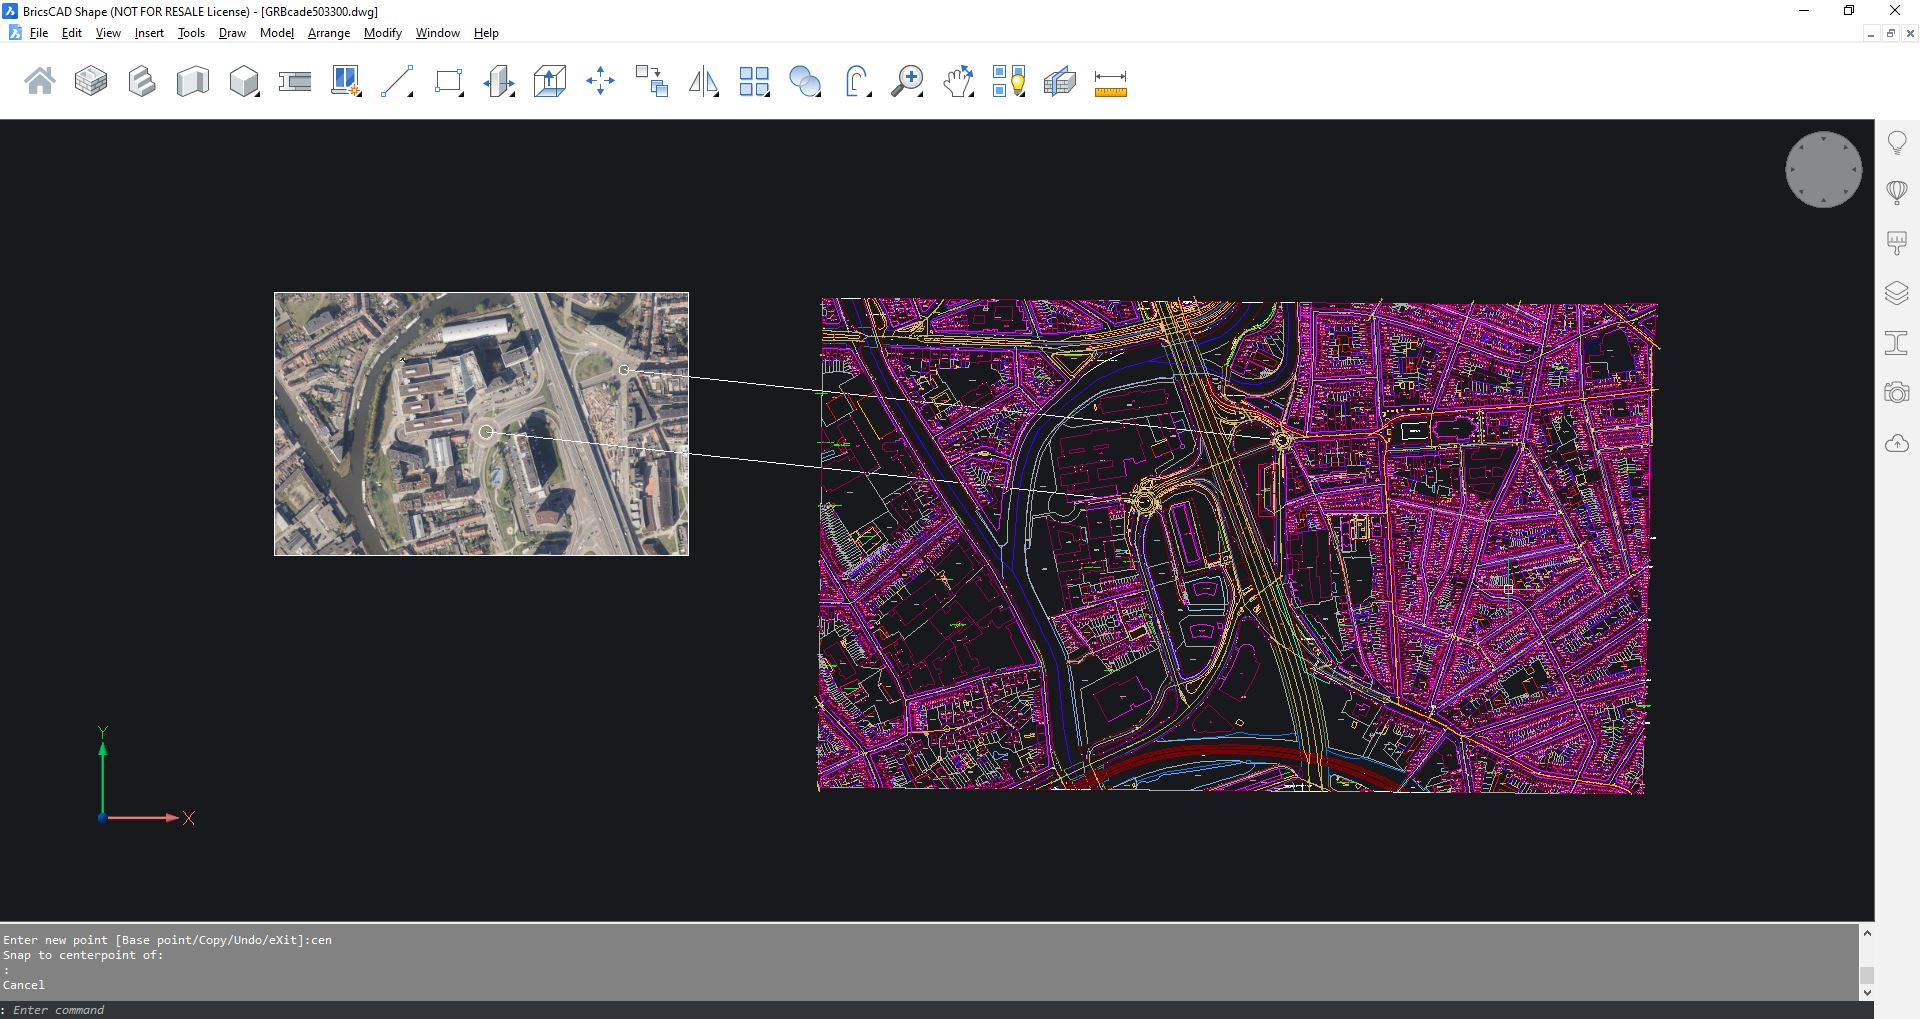 open source free gis data in BricsCAD